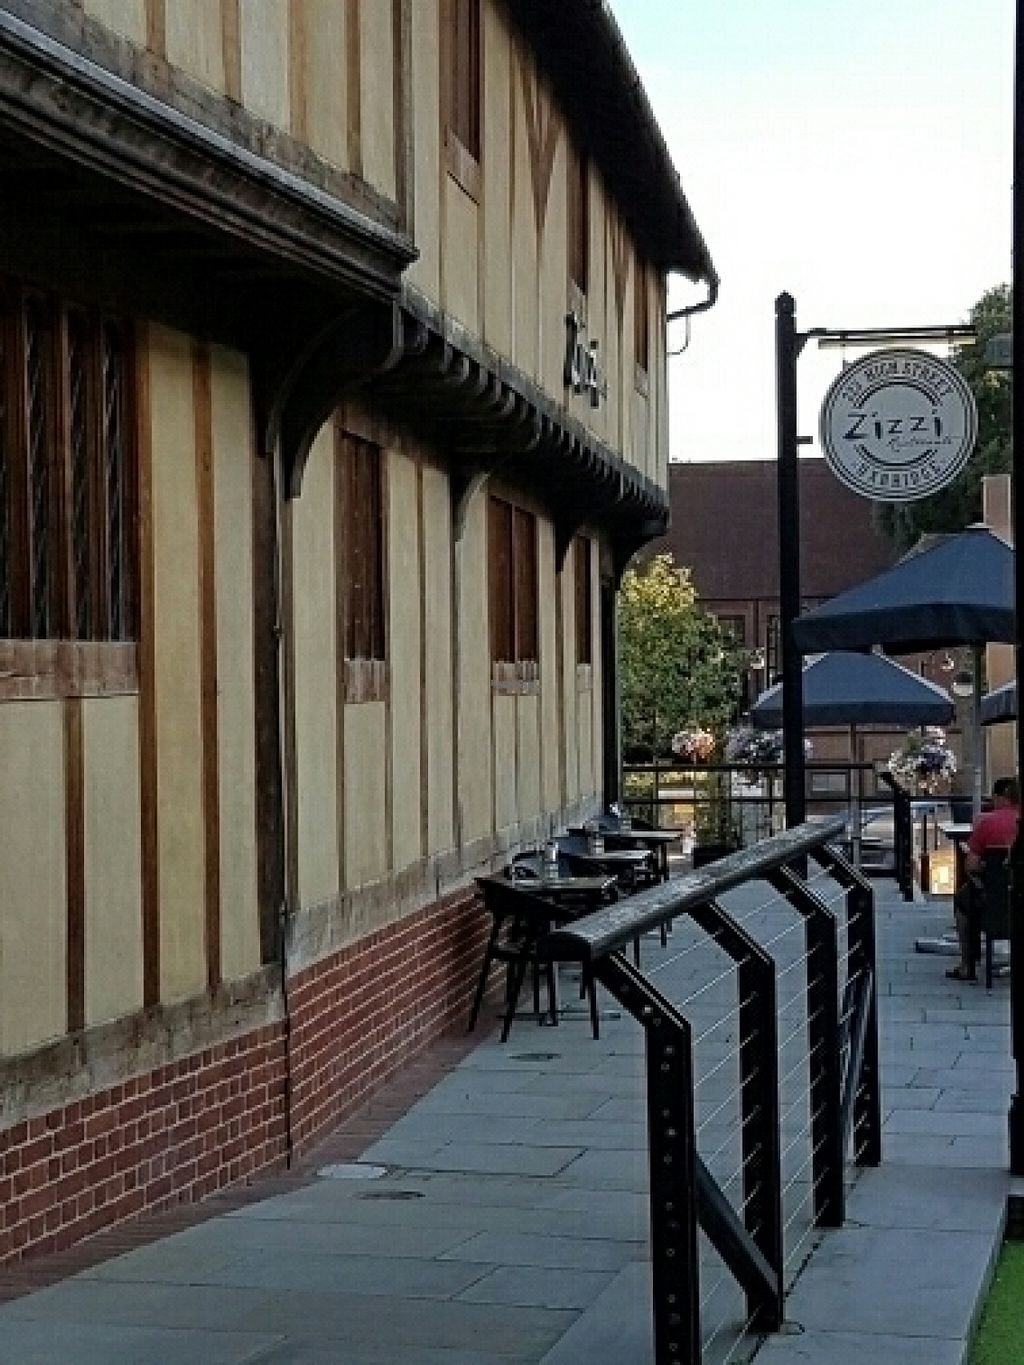 """Photo of Zizzi - Uxbridge  by <a href=""""/members/profile/Good%20for%20Vegans"""">Good for Vegans</a> <br/>Outside <br/> August 14, 2016  - <a href='/contact/abuse/image/77504/168590'>Report</a>"""